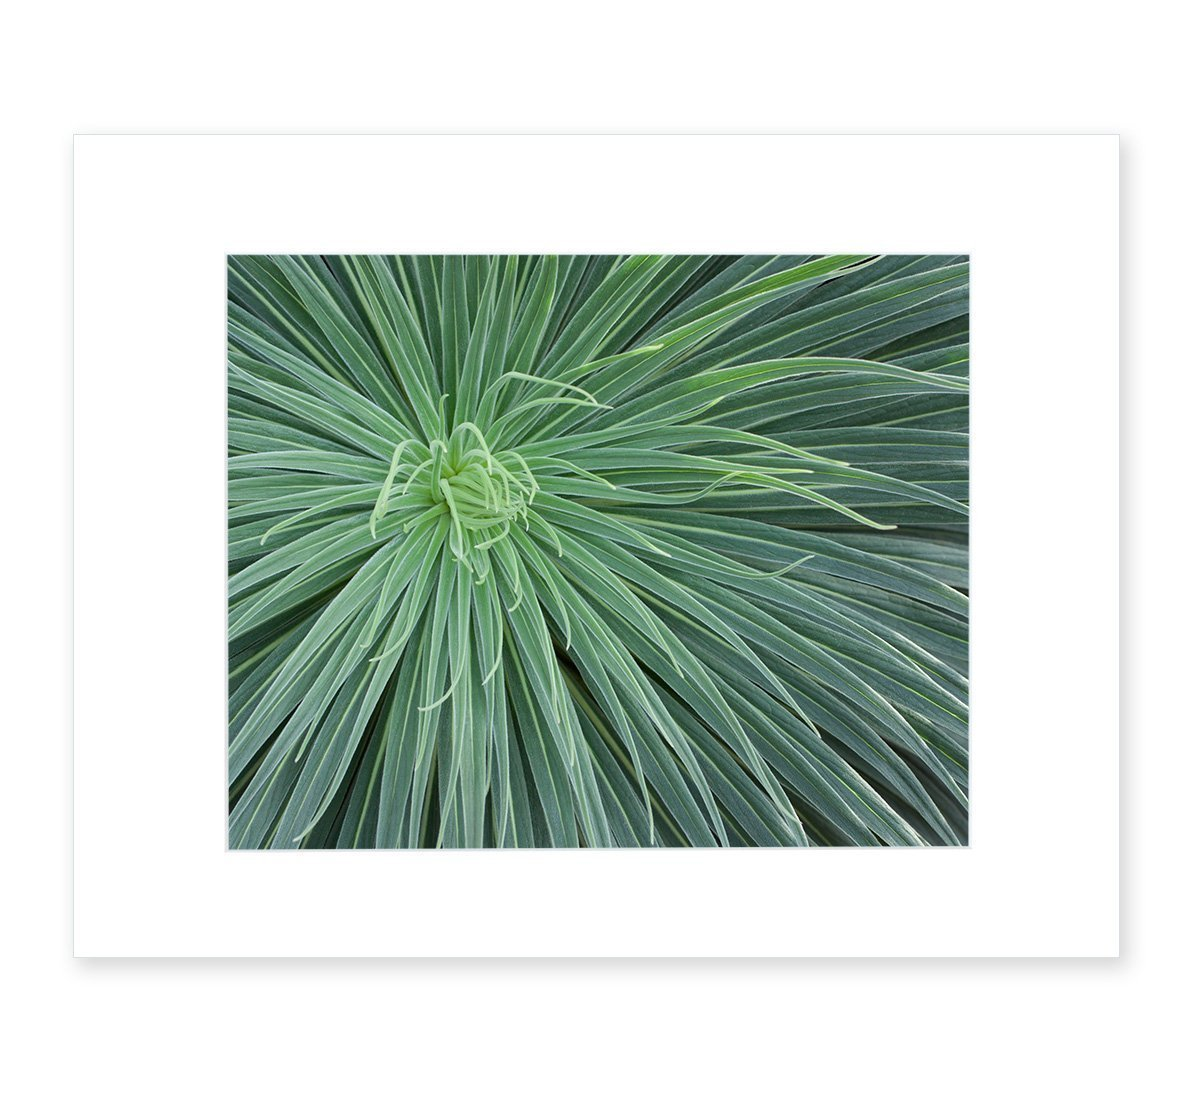 Abstract Green Botanical Wall Art, Southwestern Home Decor, 8x10 Matted Photographic Print (fits 11x14 frame), 'Desert Fireworks'